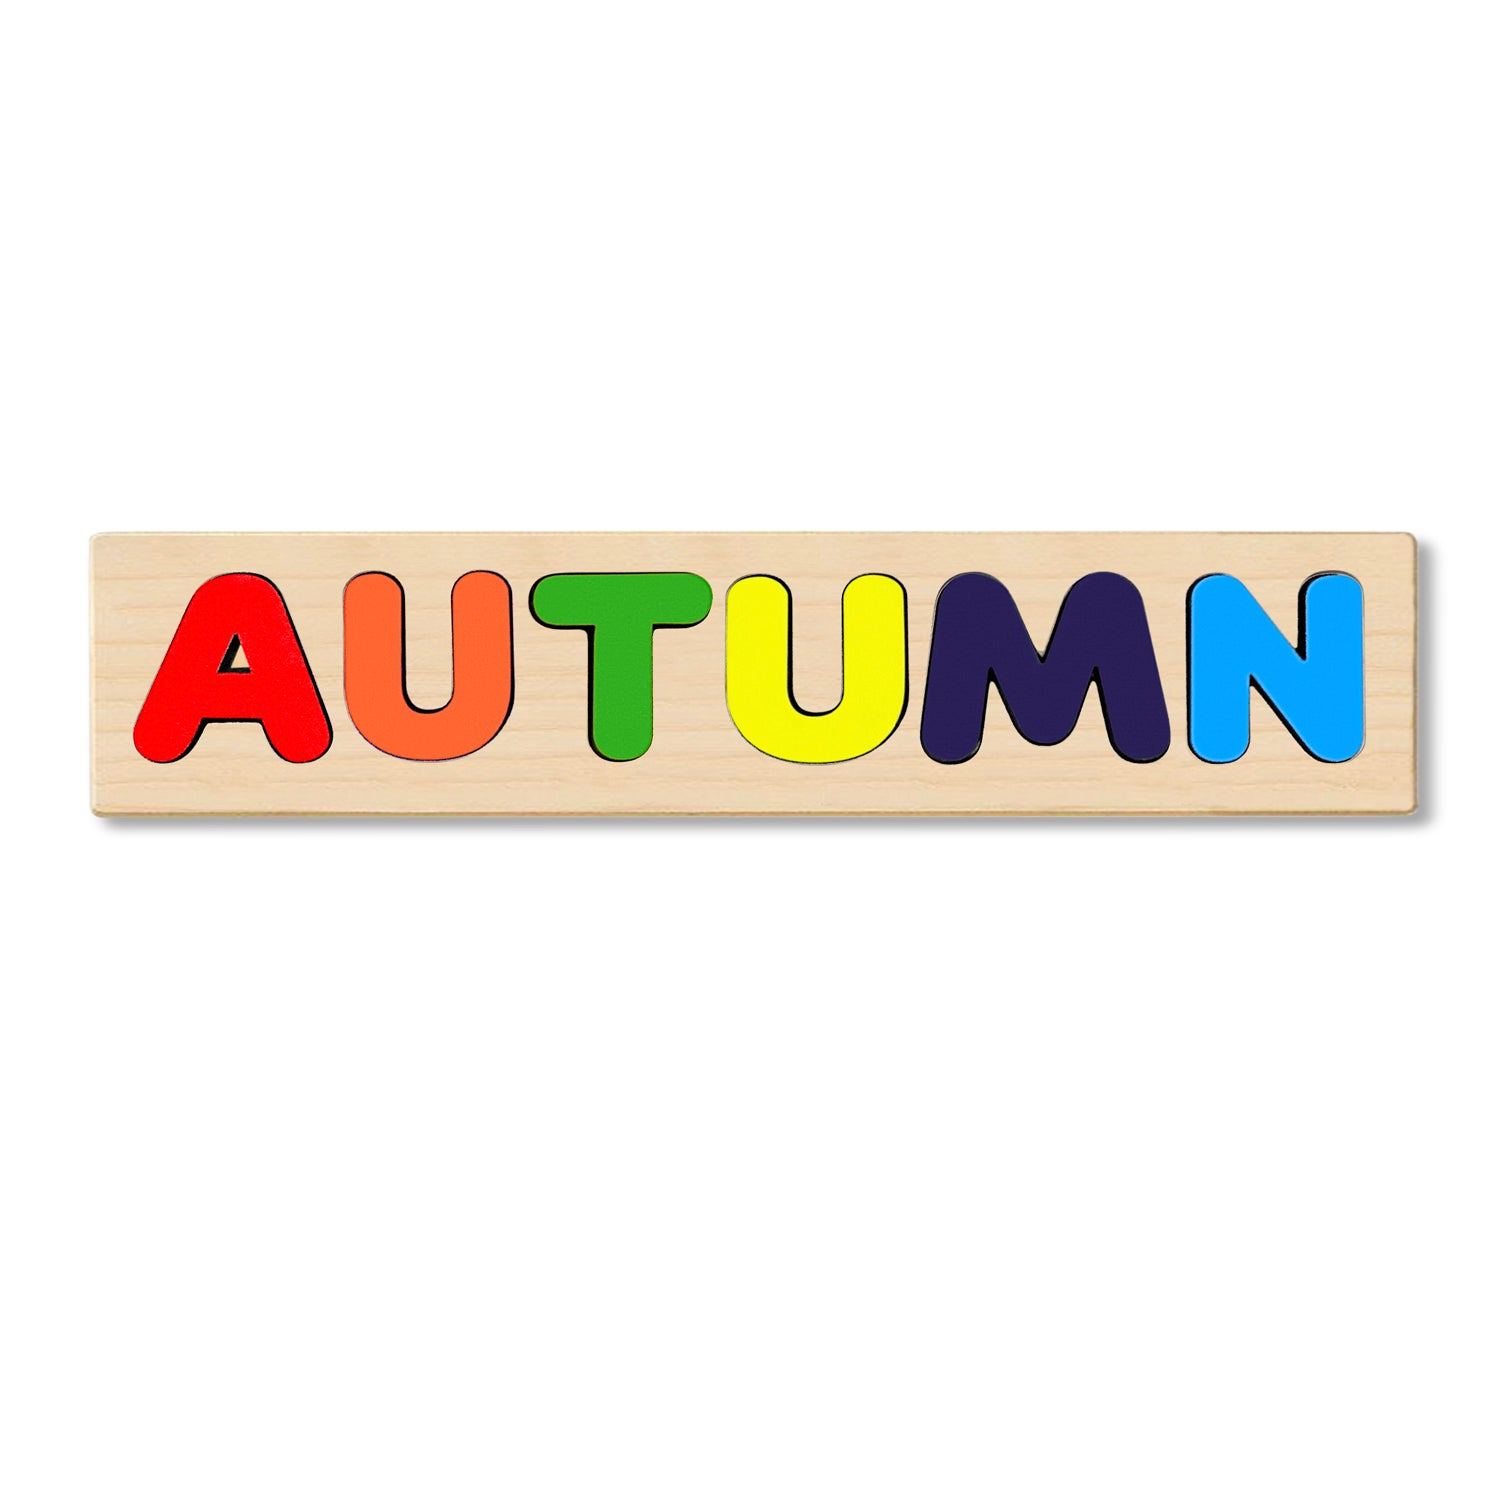 Wooden Personalized Name Puzzle - Any Name Or First & Last Name Choose up to 12 Letters No Extra Cost - AUTUMN